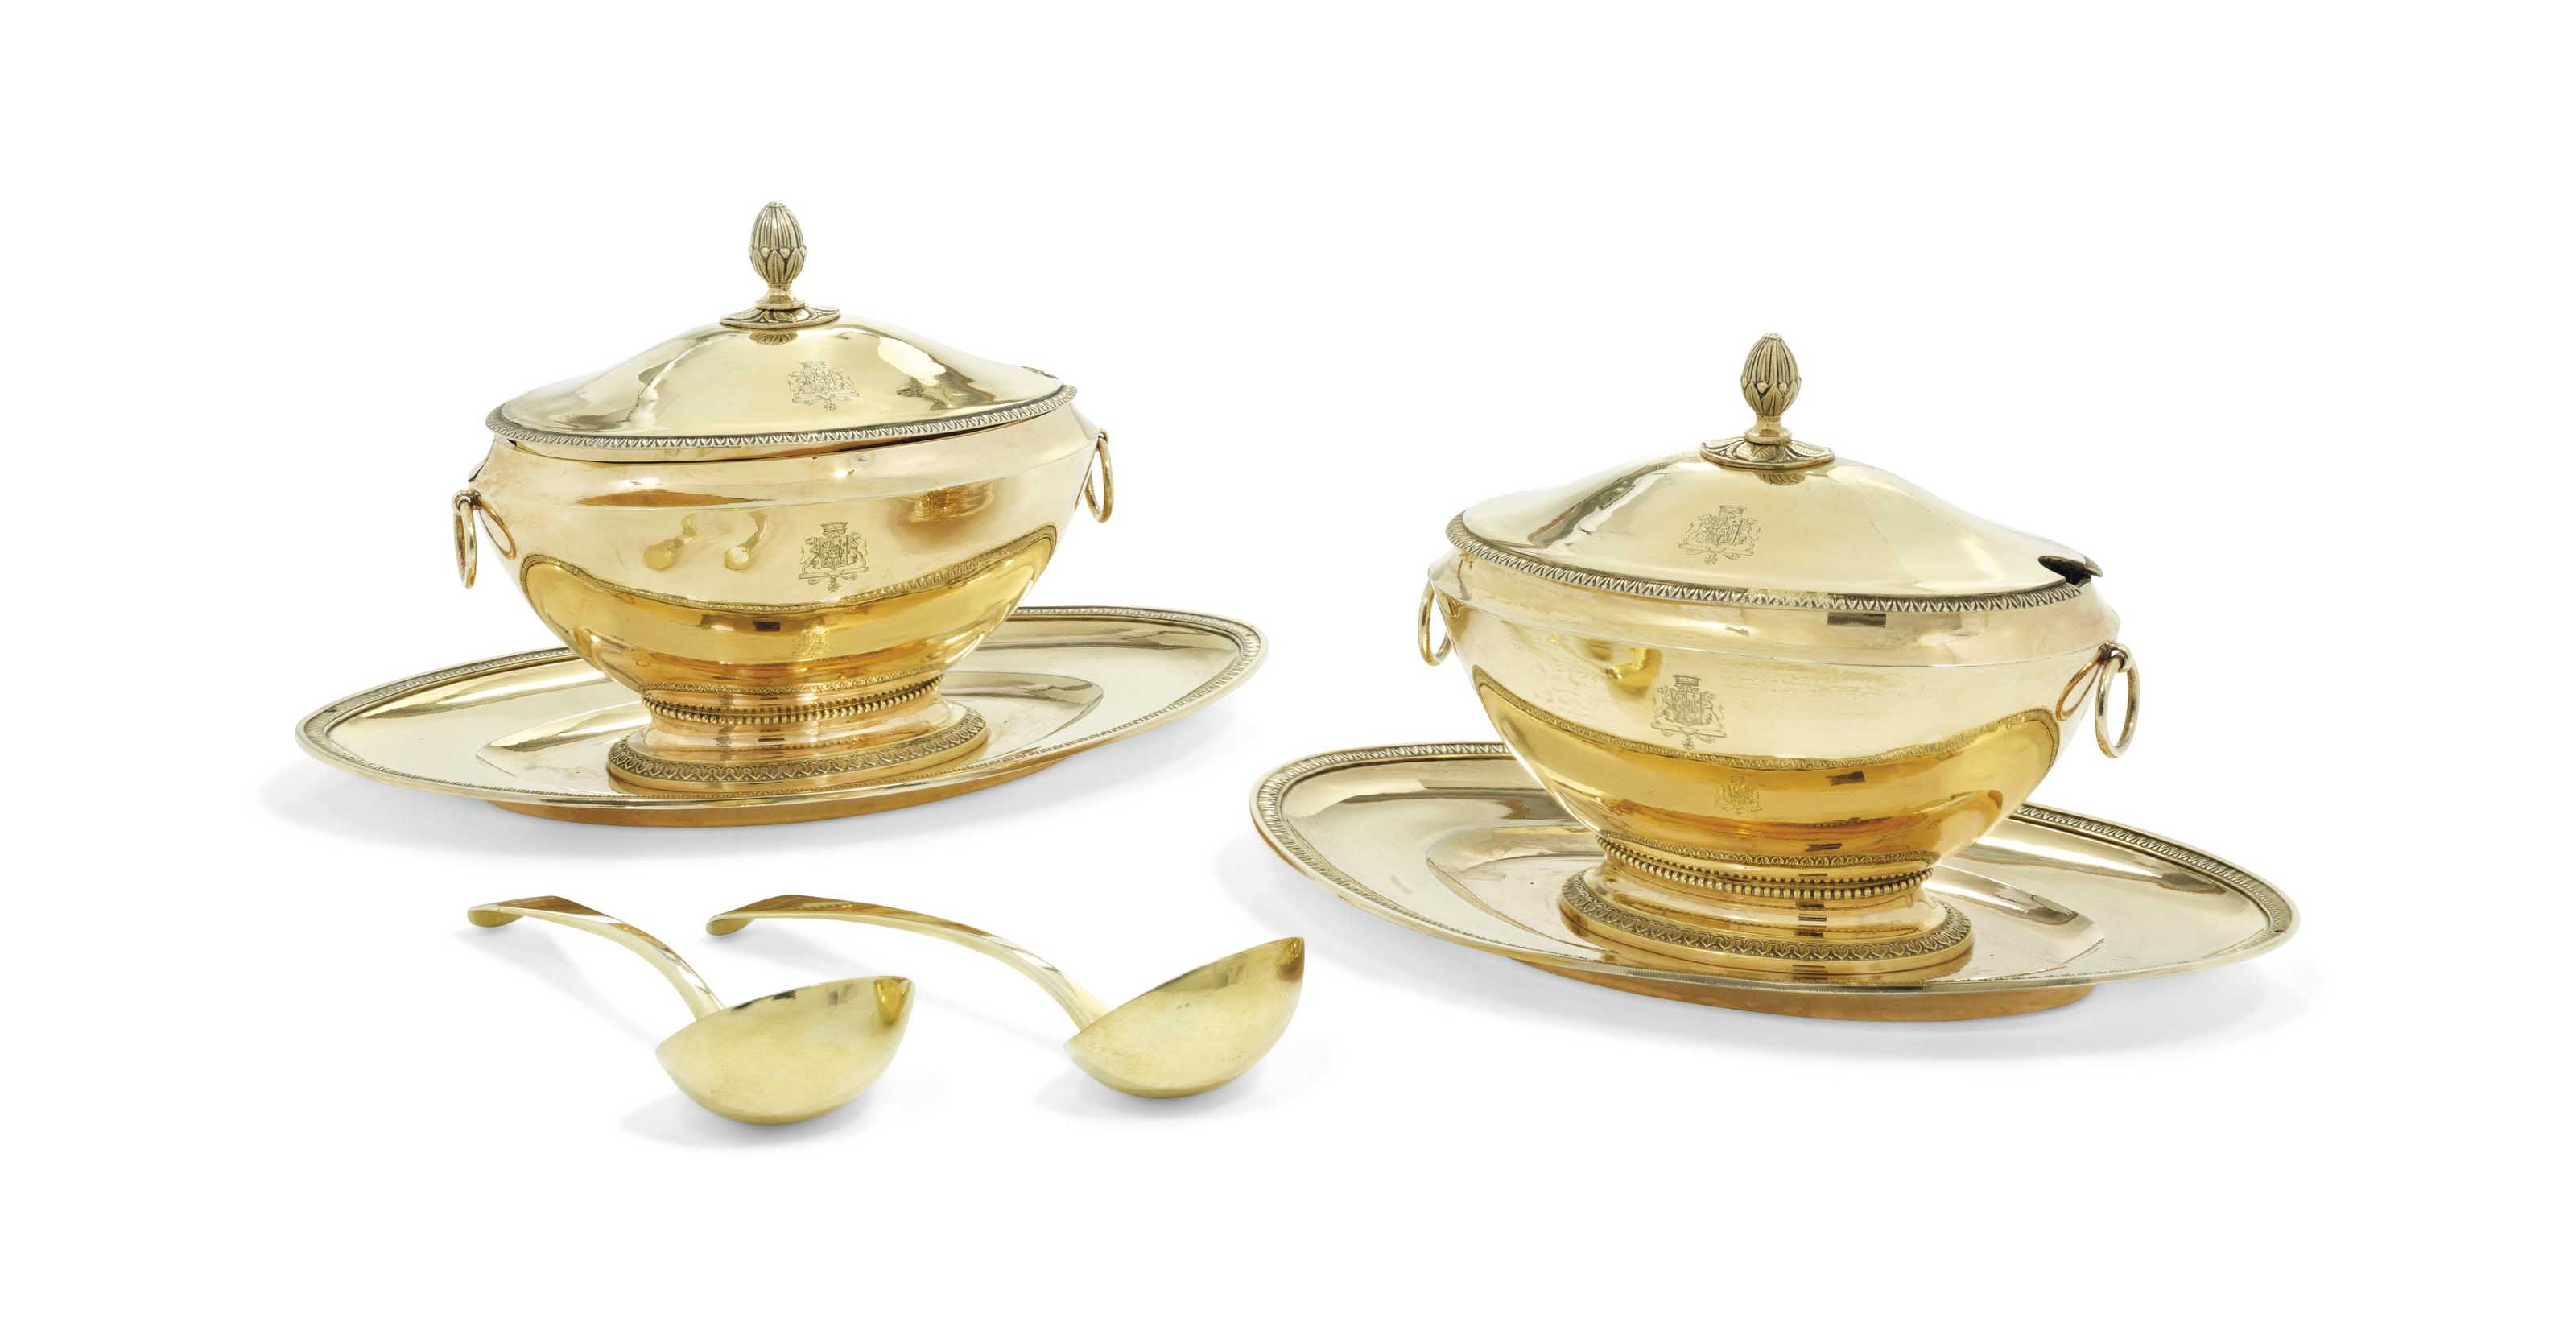 A FRENCH PAIR OF SILVER-GILT S